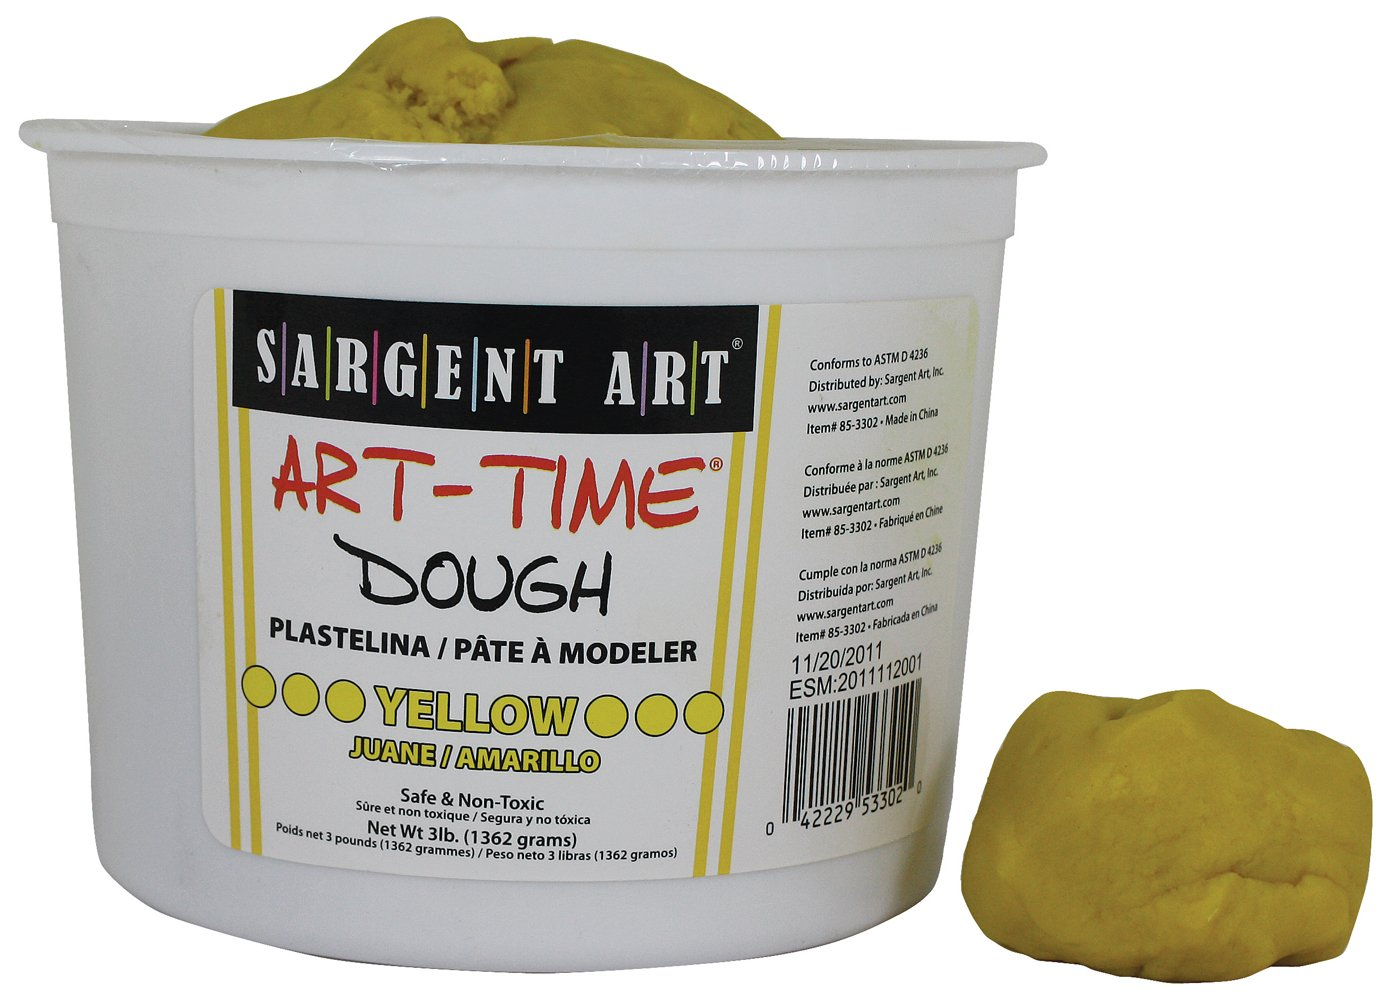 Sargent Art 85-3302 3-Pound Art-Time Dough, Yellow